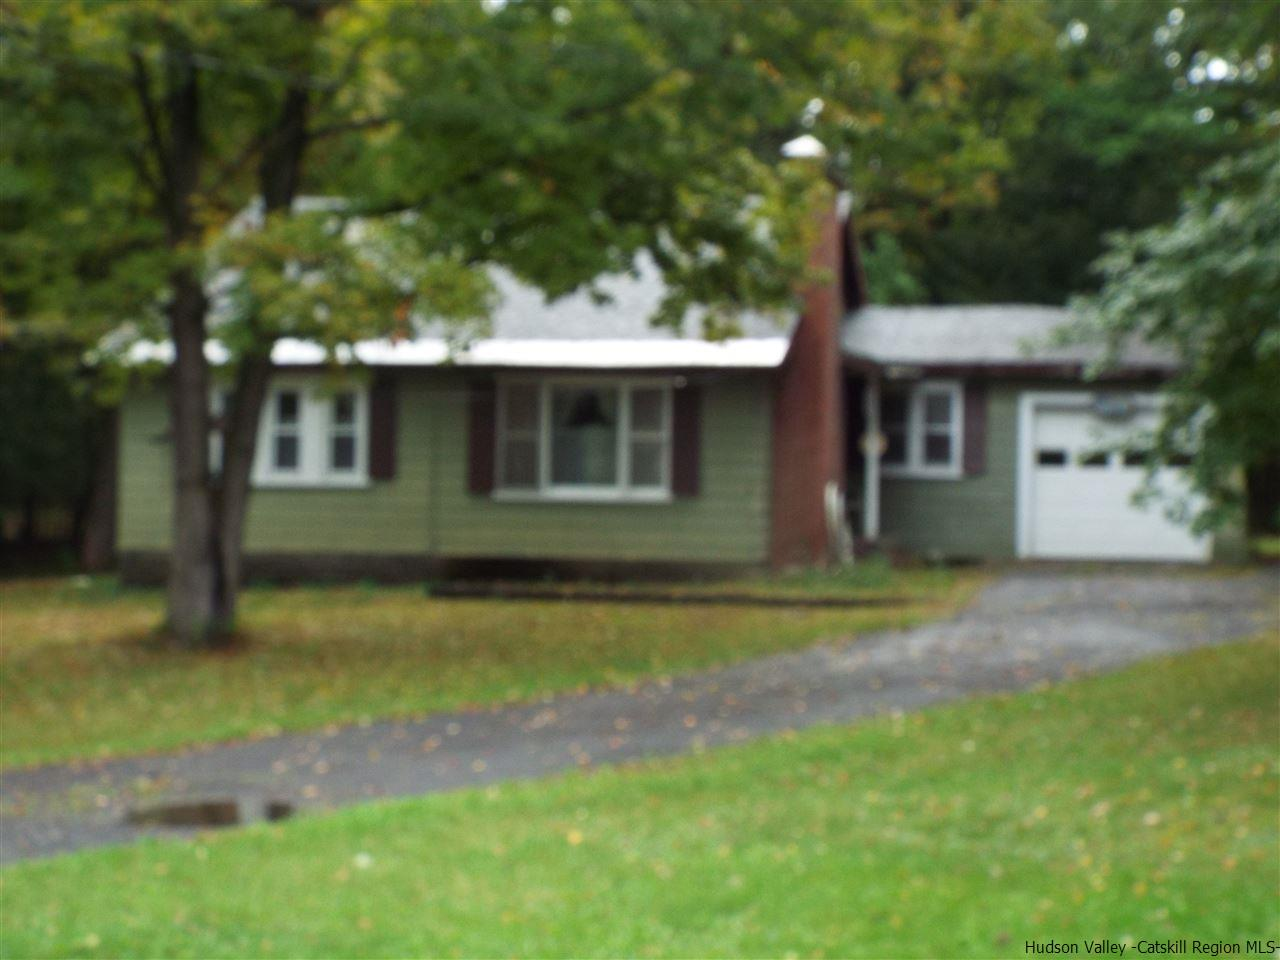 271 Old Rt 212, Saugerties, NY 12477